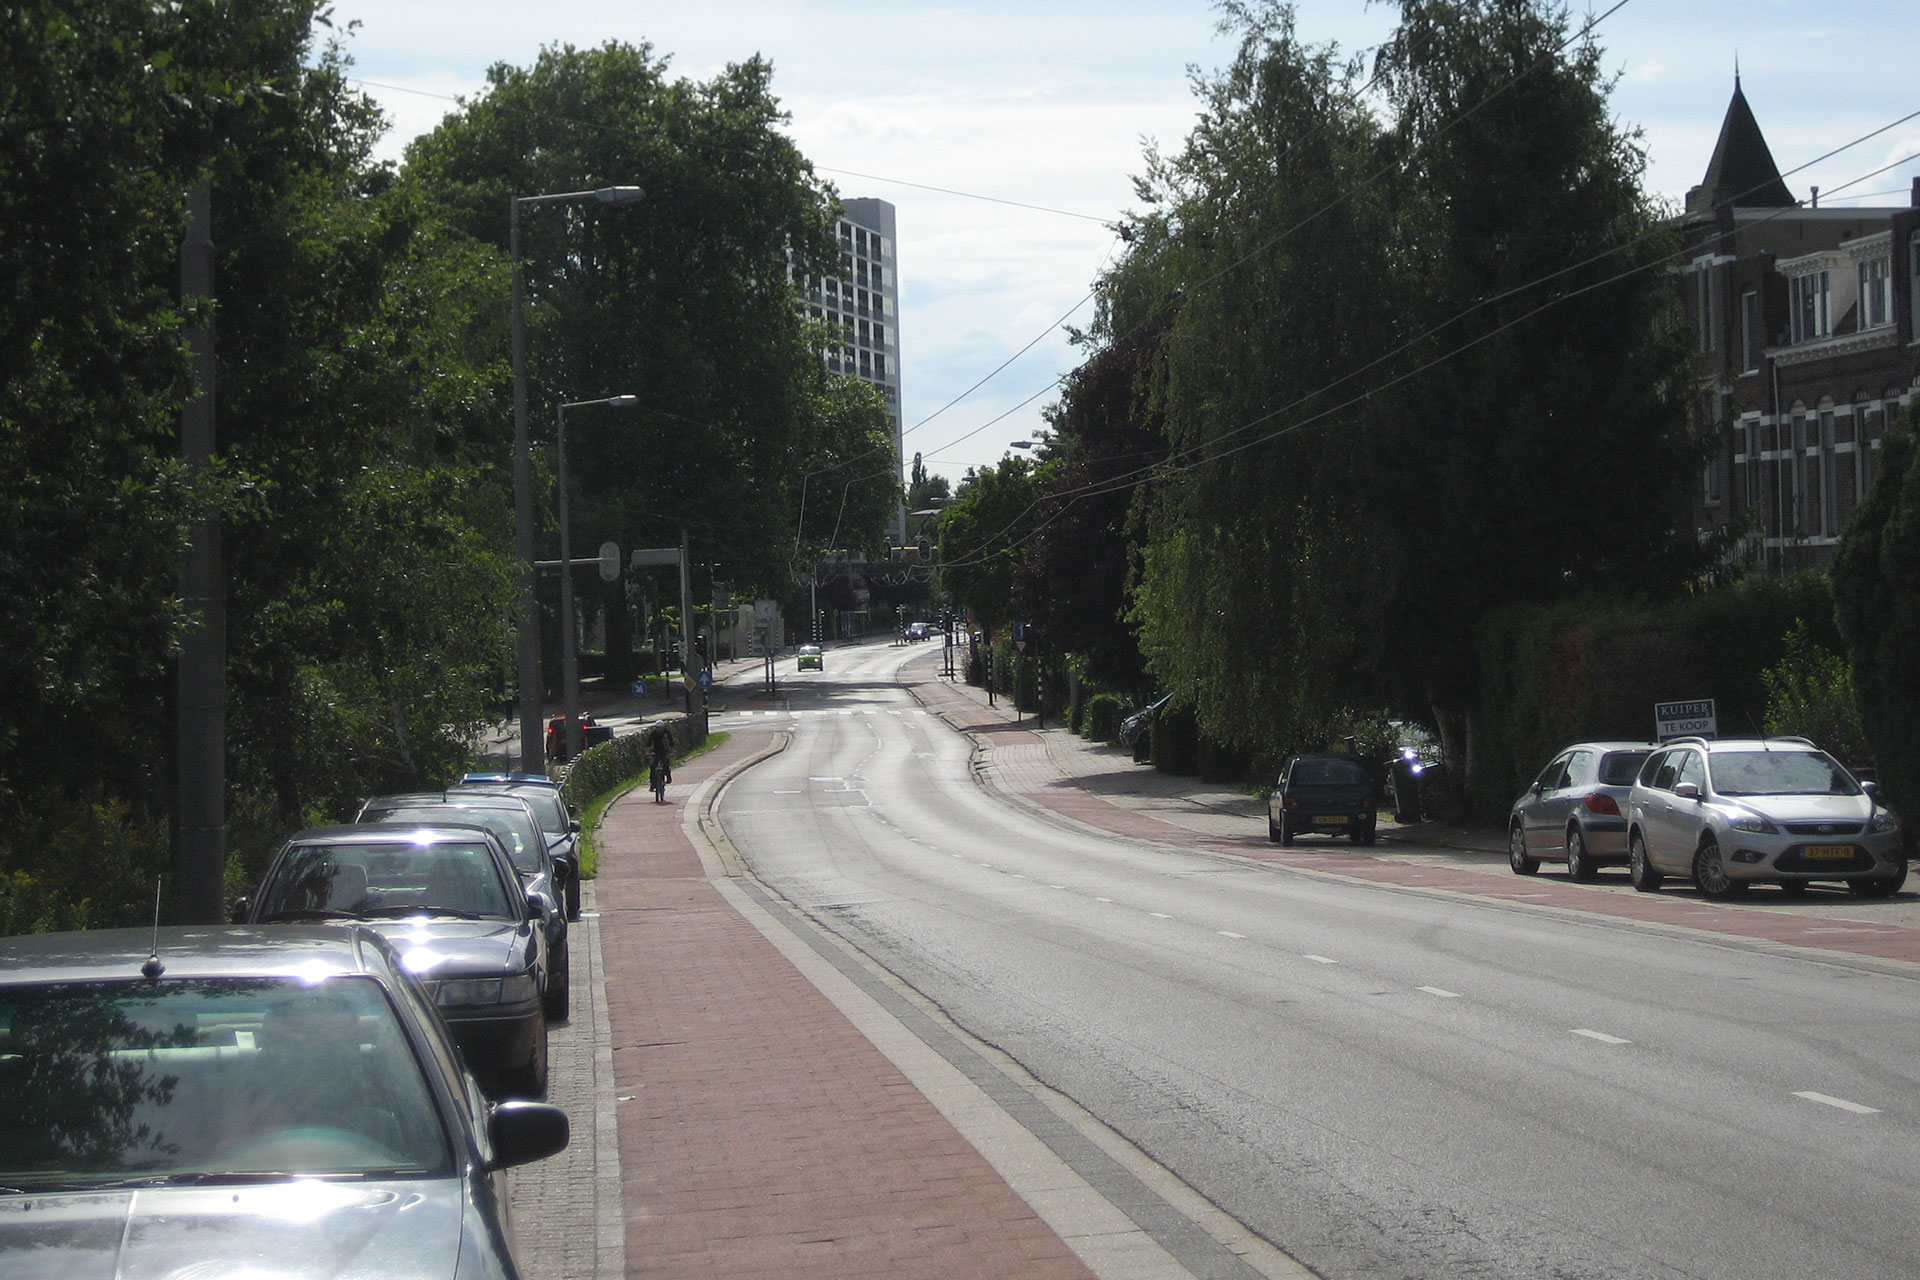 The junction of the high road and low road opposite the St. Elizabeth Hospital today